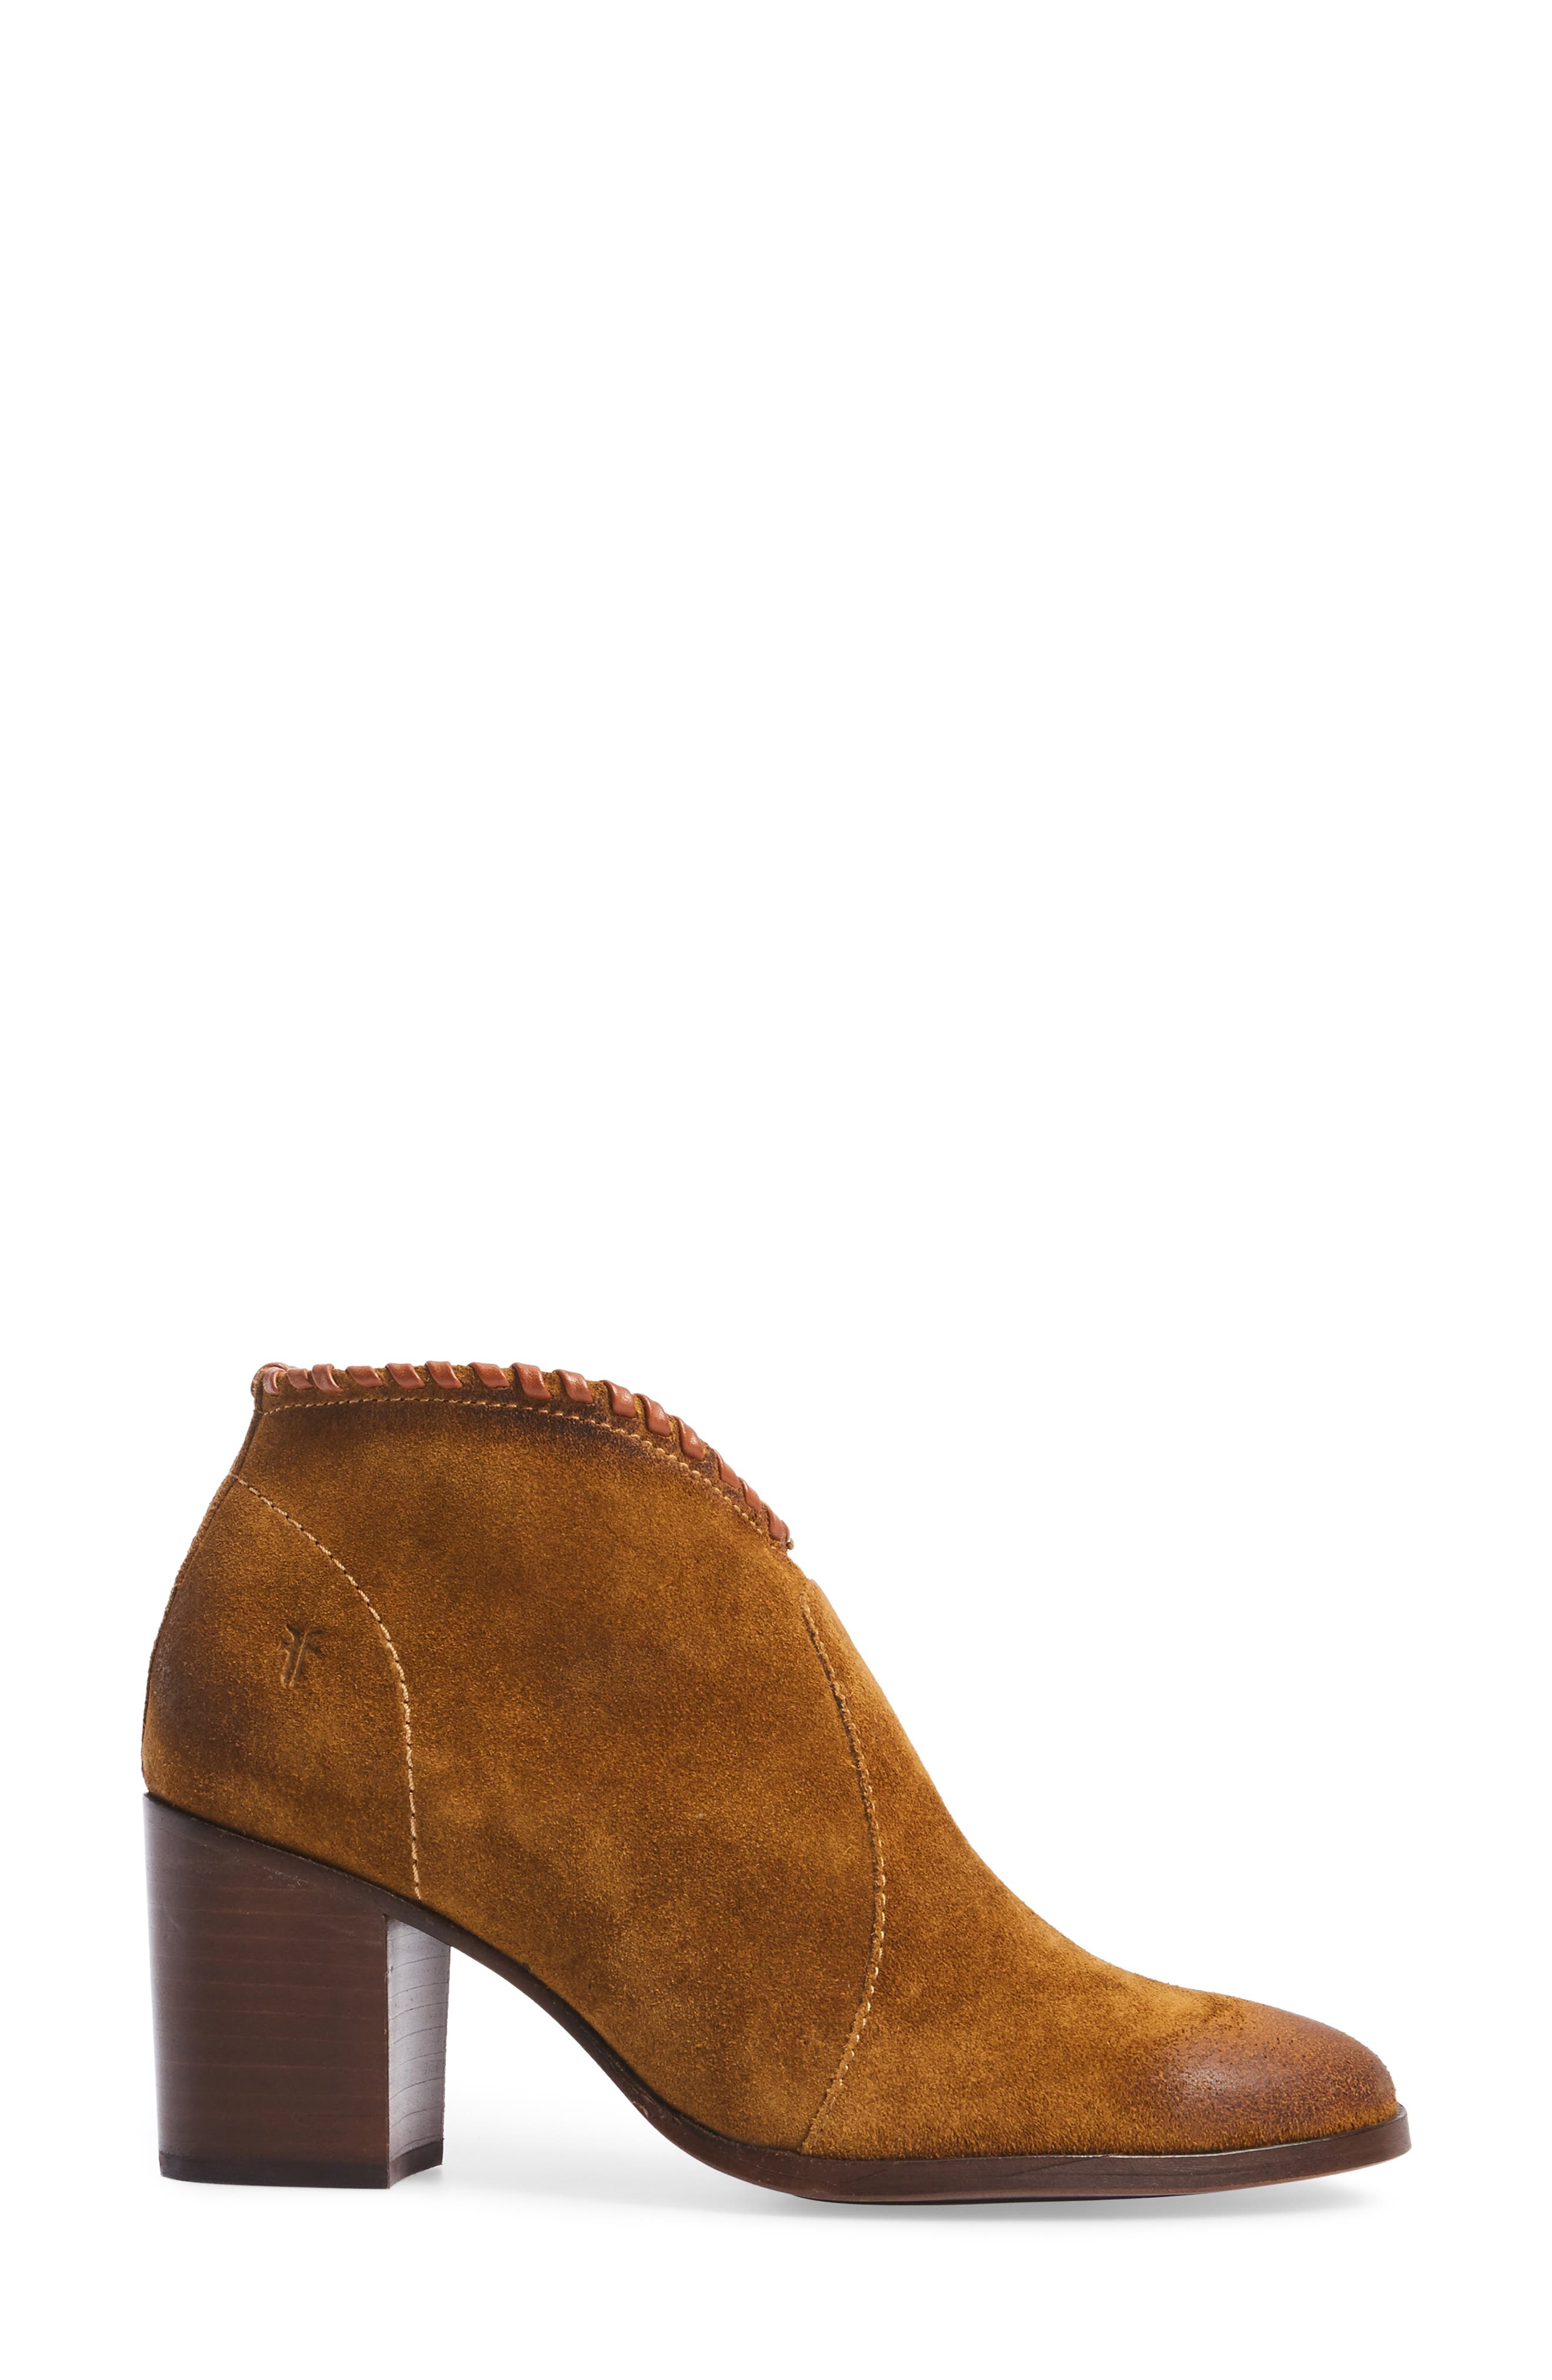 Nora Whipstitch Bootie,                             Alternate thumbnail 3, color,                             Wheat